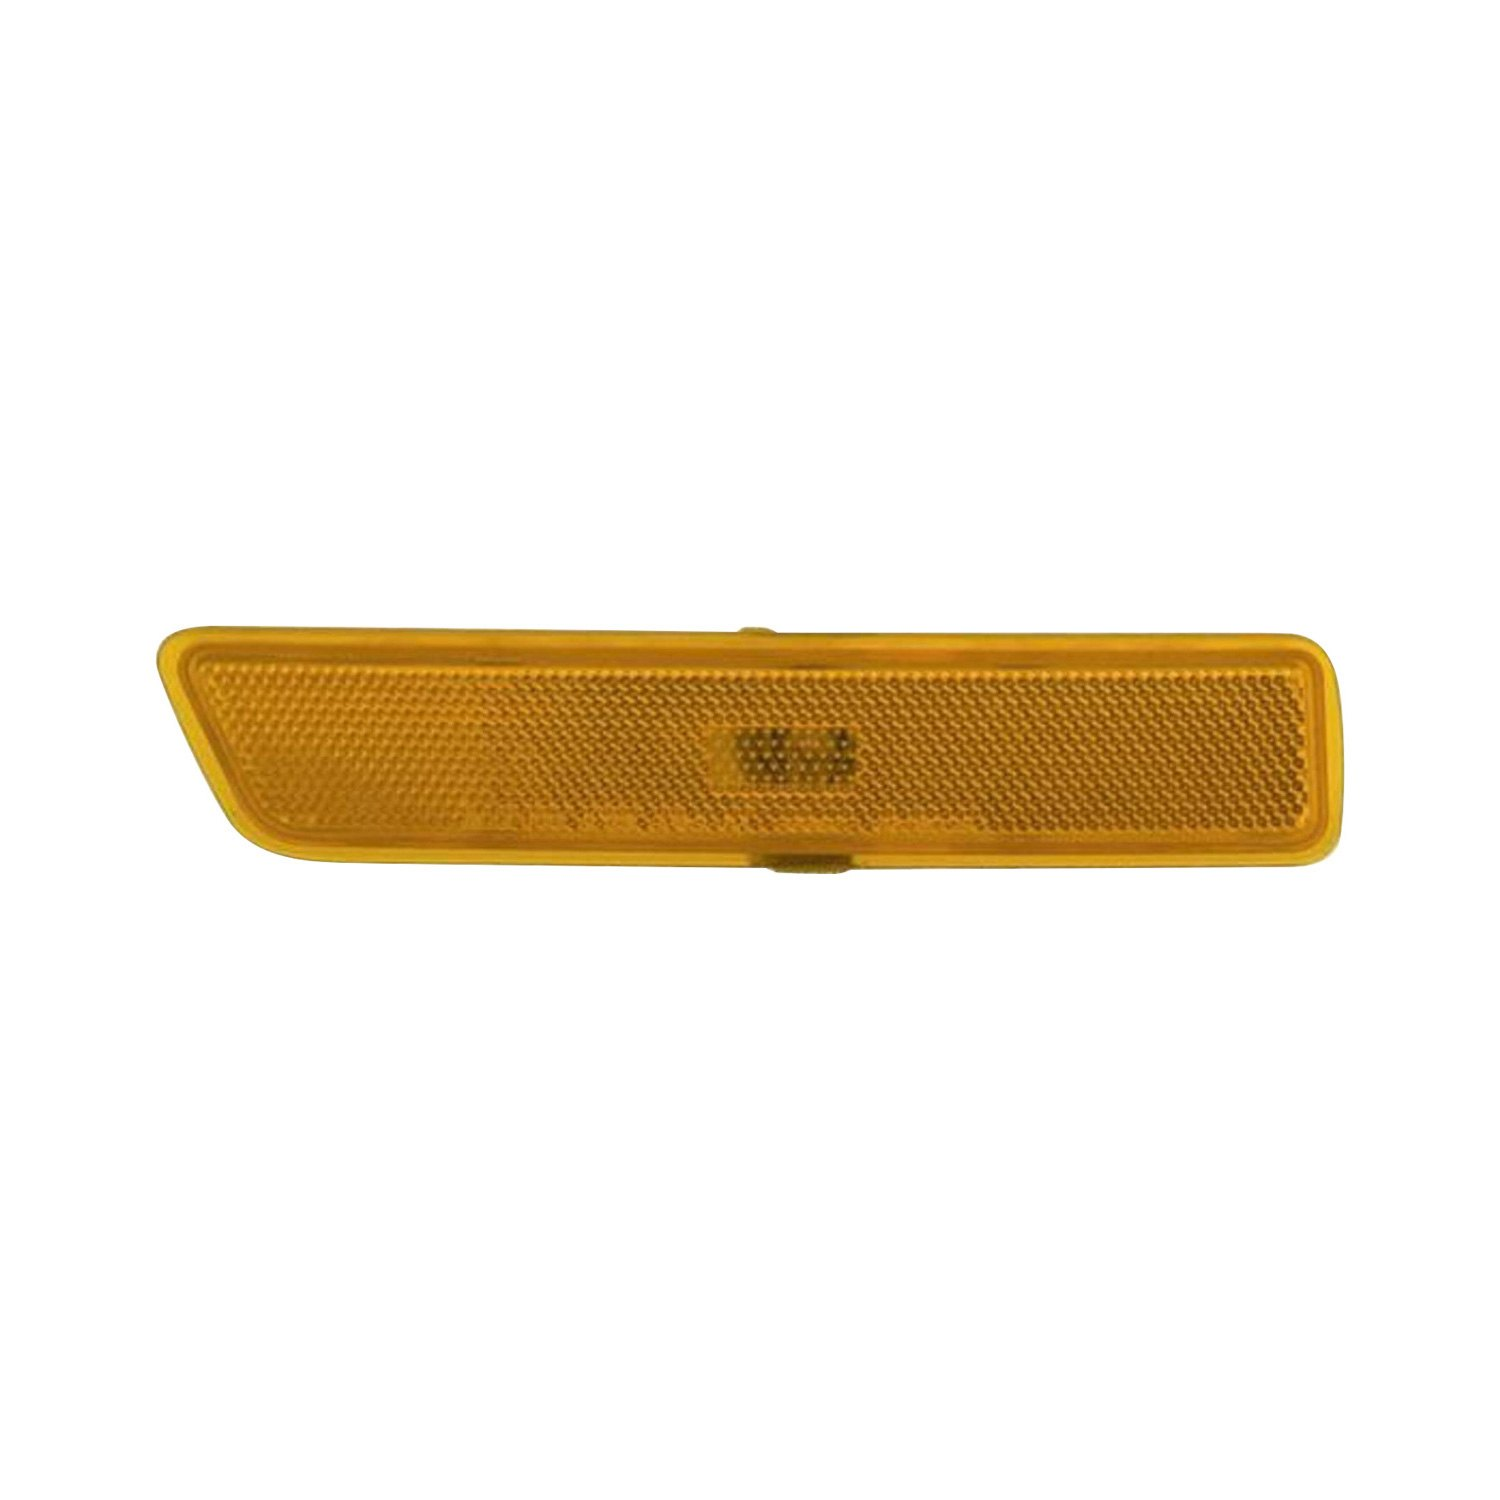 TYC 18 5935 00 1 Passenger Side NSF Certified Replacement Side Marker Light